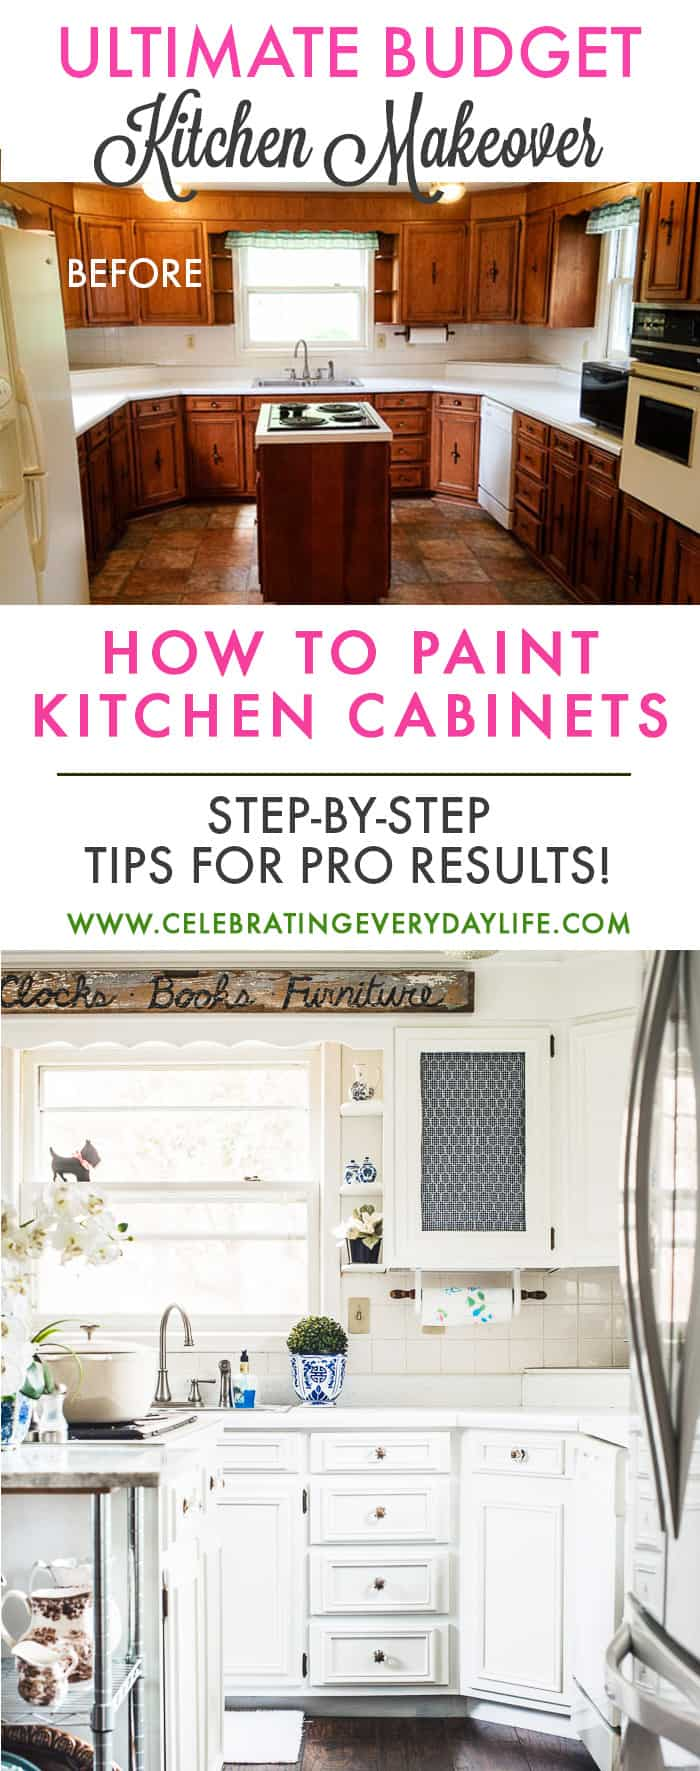 How To Turn Your Kitchen Into A Dream With Paint Step By